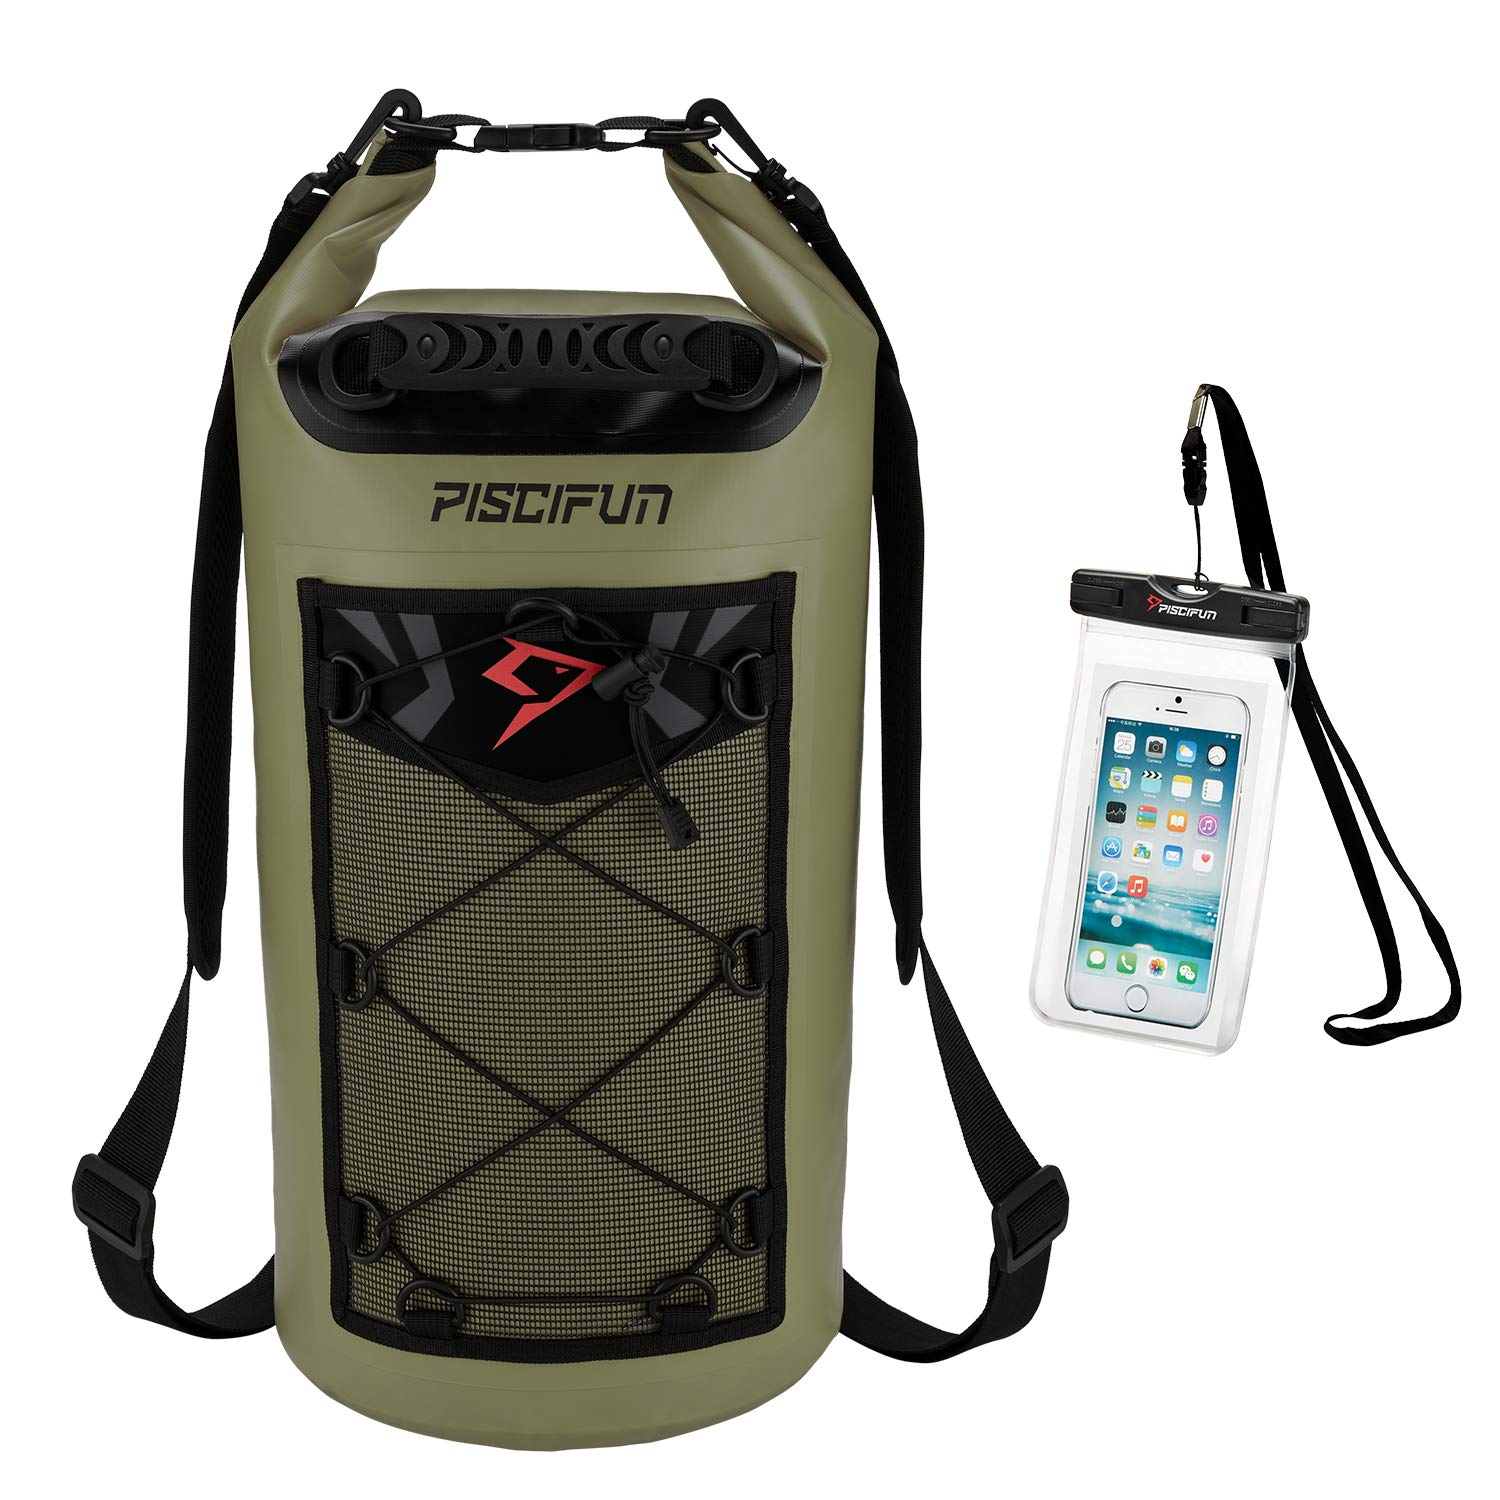 51ab70697499 Piscifun Waterproof Dry Bag Backpack Floating Dry Backpack for Water Sports  - Fishing, Boating, Kayaking, Surfing, Rafting, Camping Gifts for Men and  ...